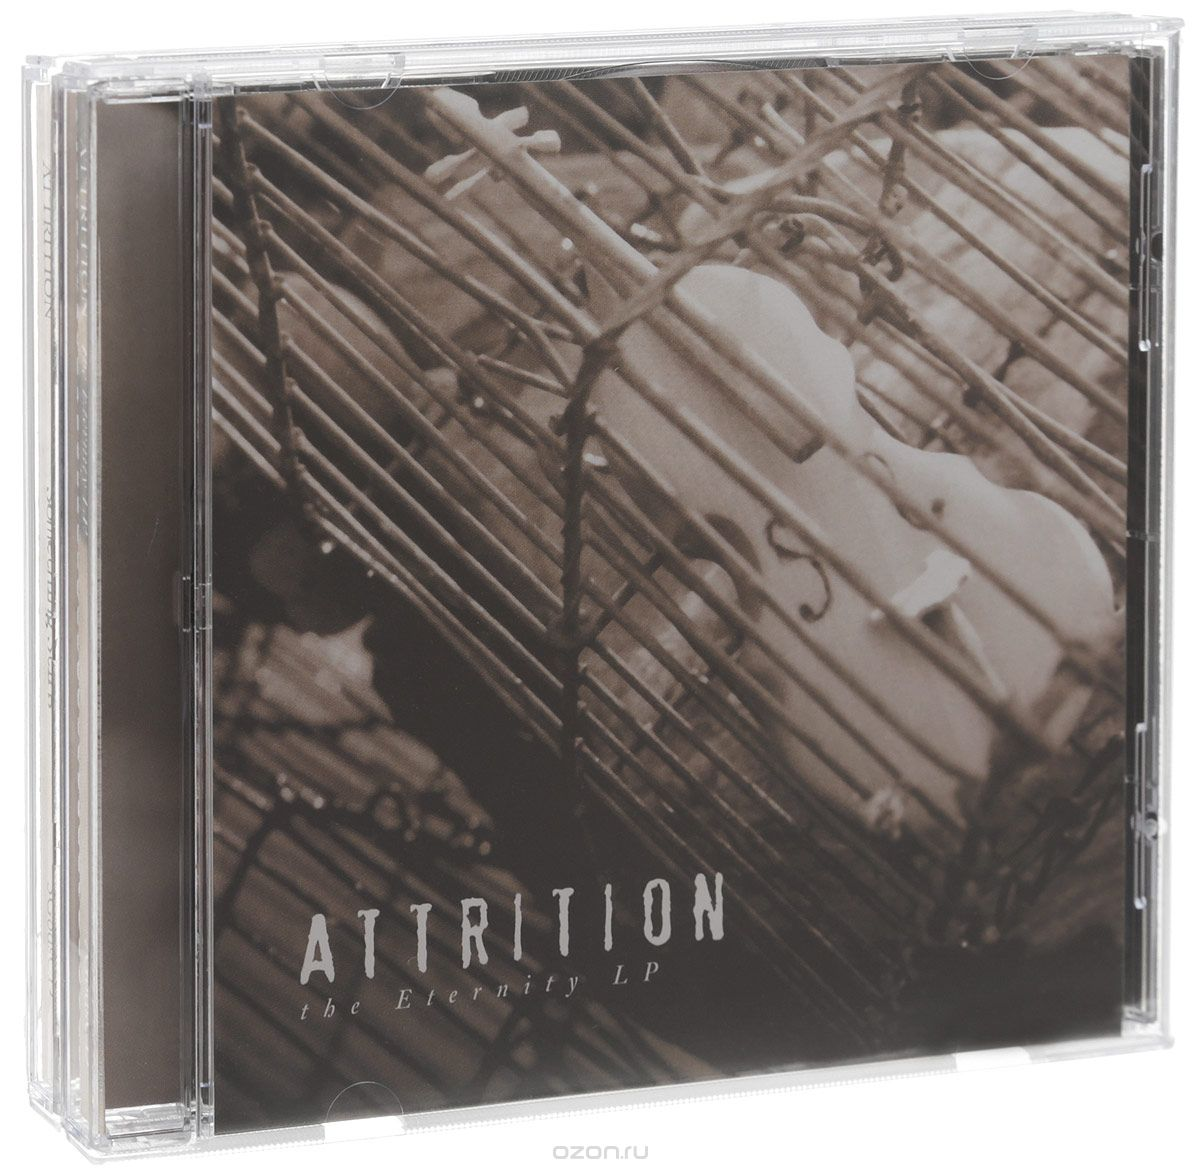 Attrition. Something Stirs / Eternity LP (2 CD)